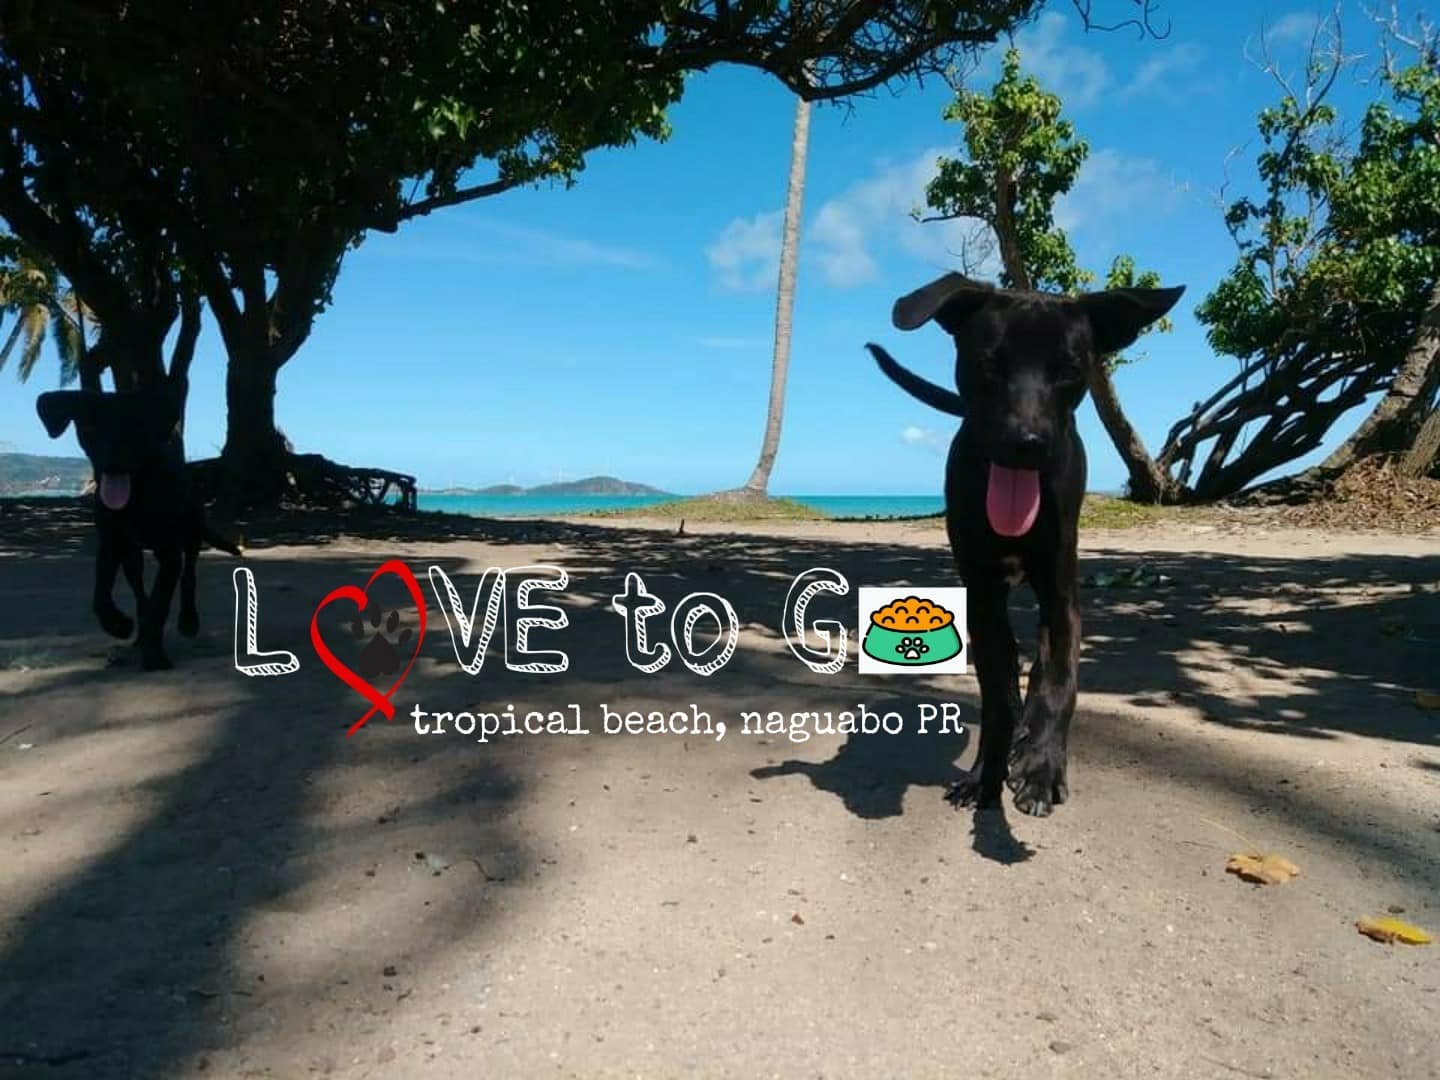 Love to Go - Caring for abandoned dogs and cats in Naguabo, Puerto Rico